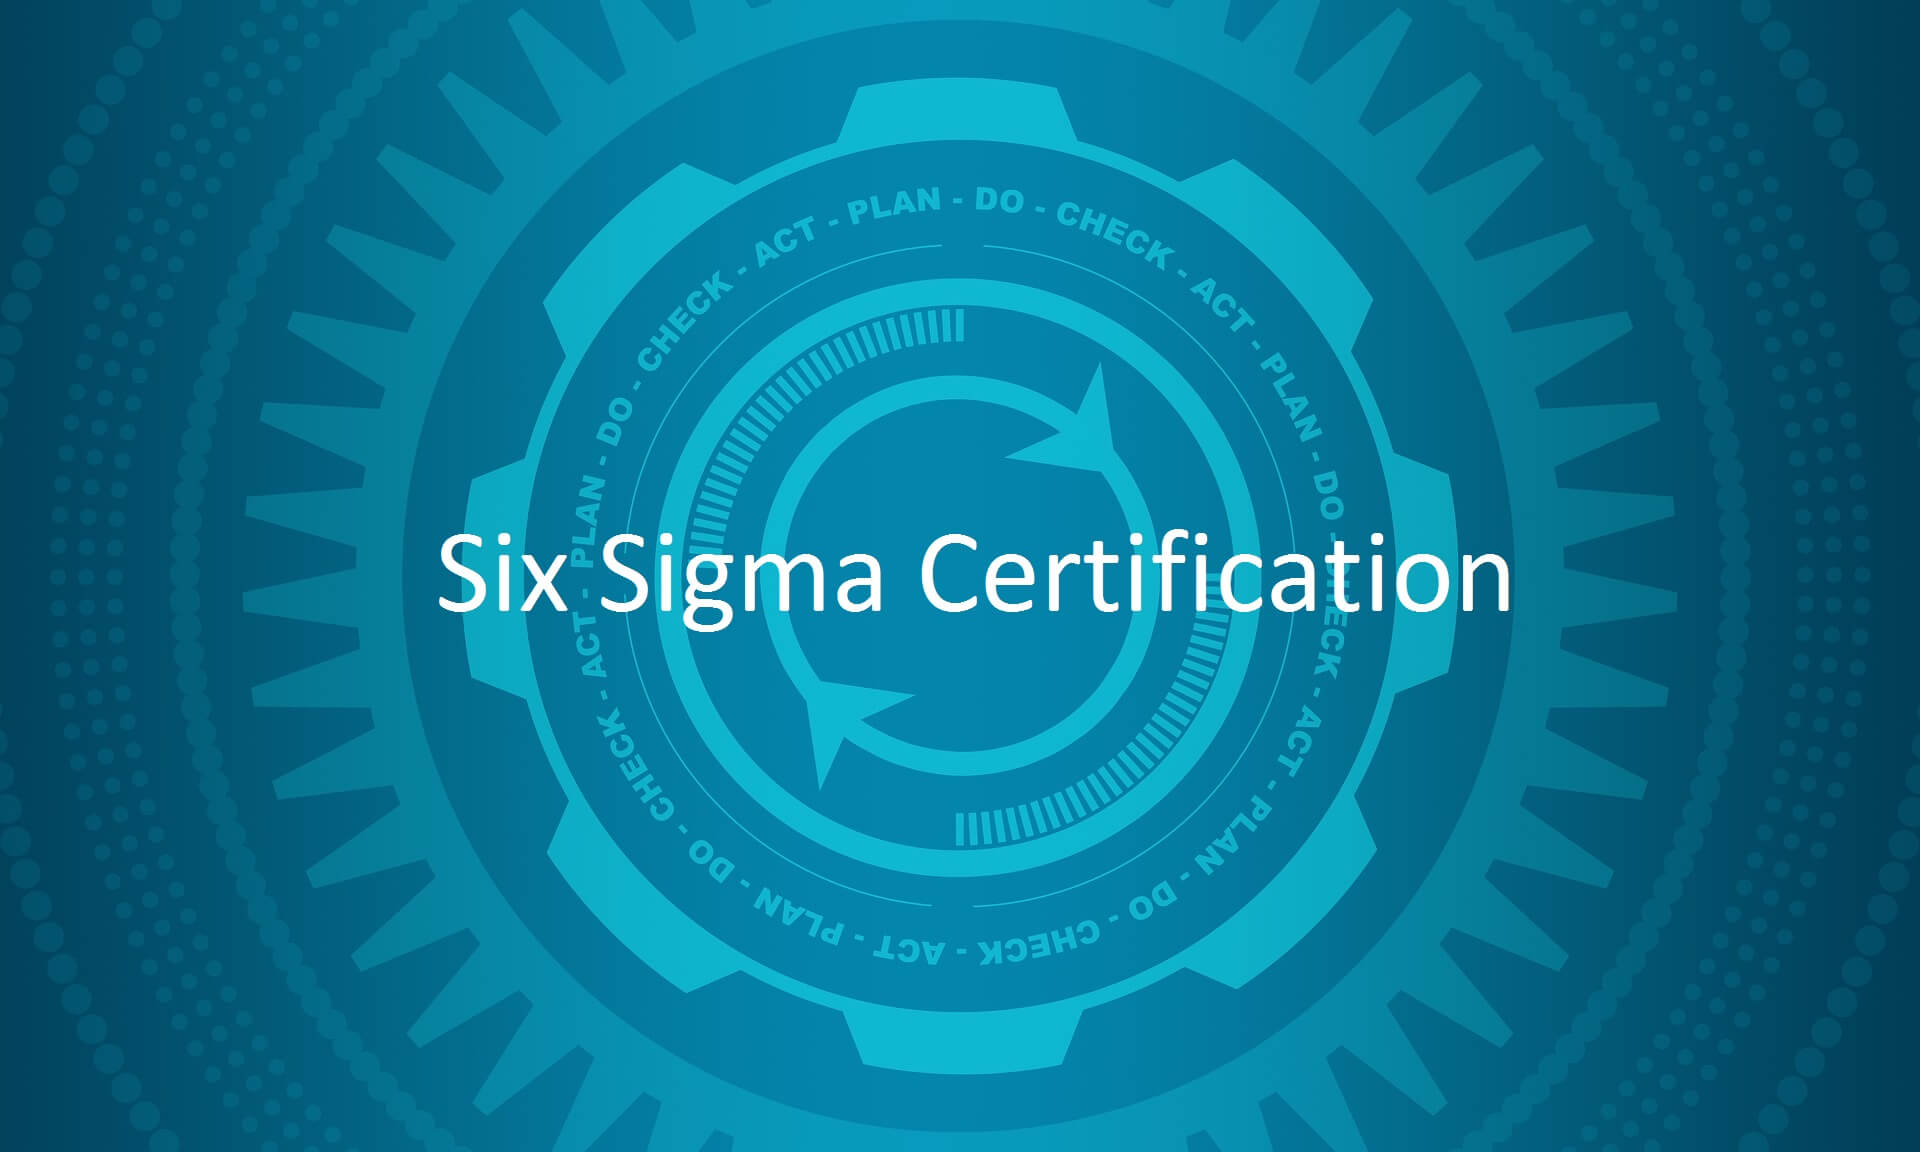 Sigma Certification Course in 2020